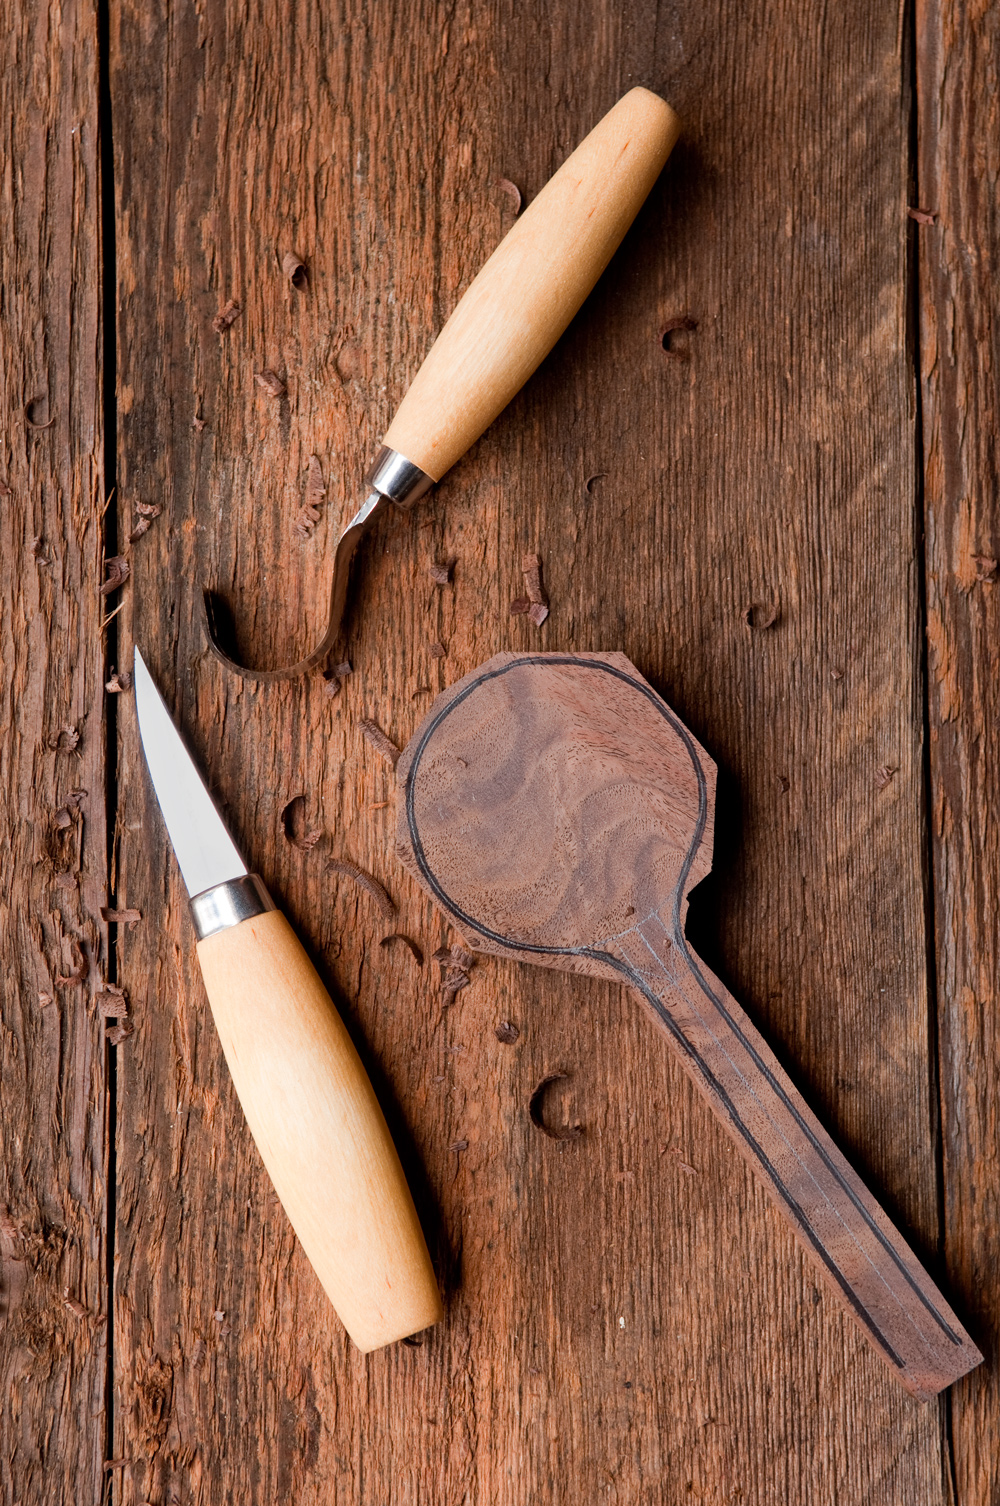 How to carve wooden spoons tools 1original